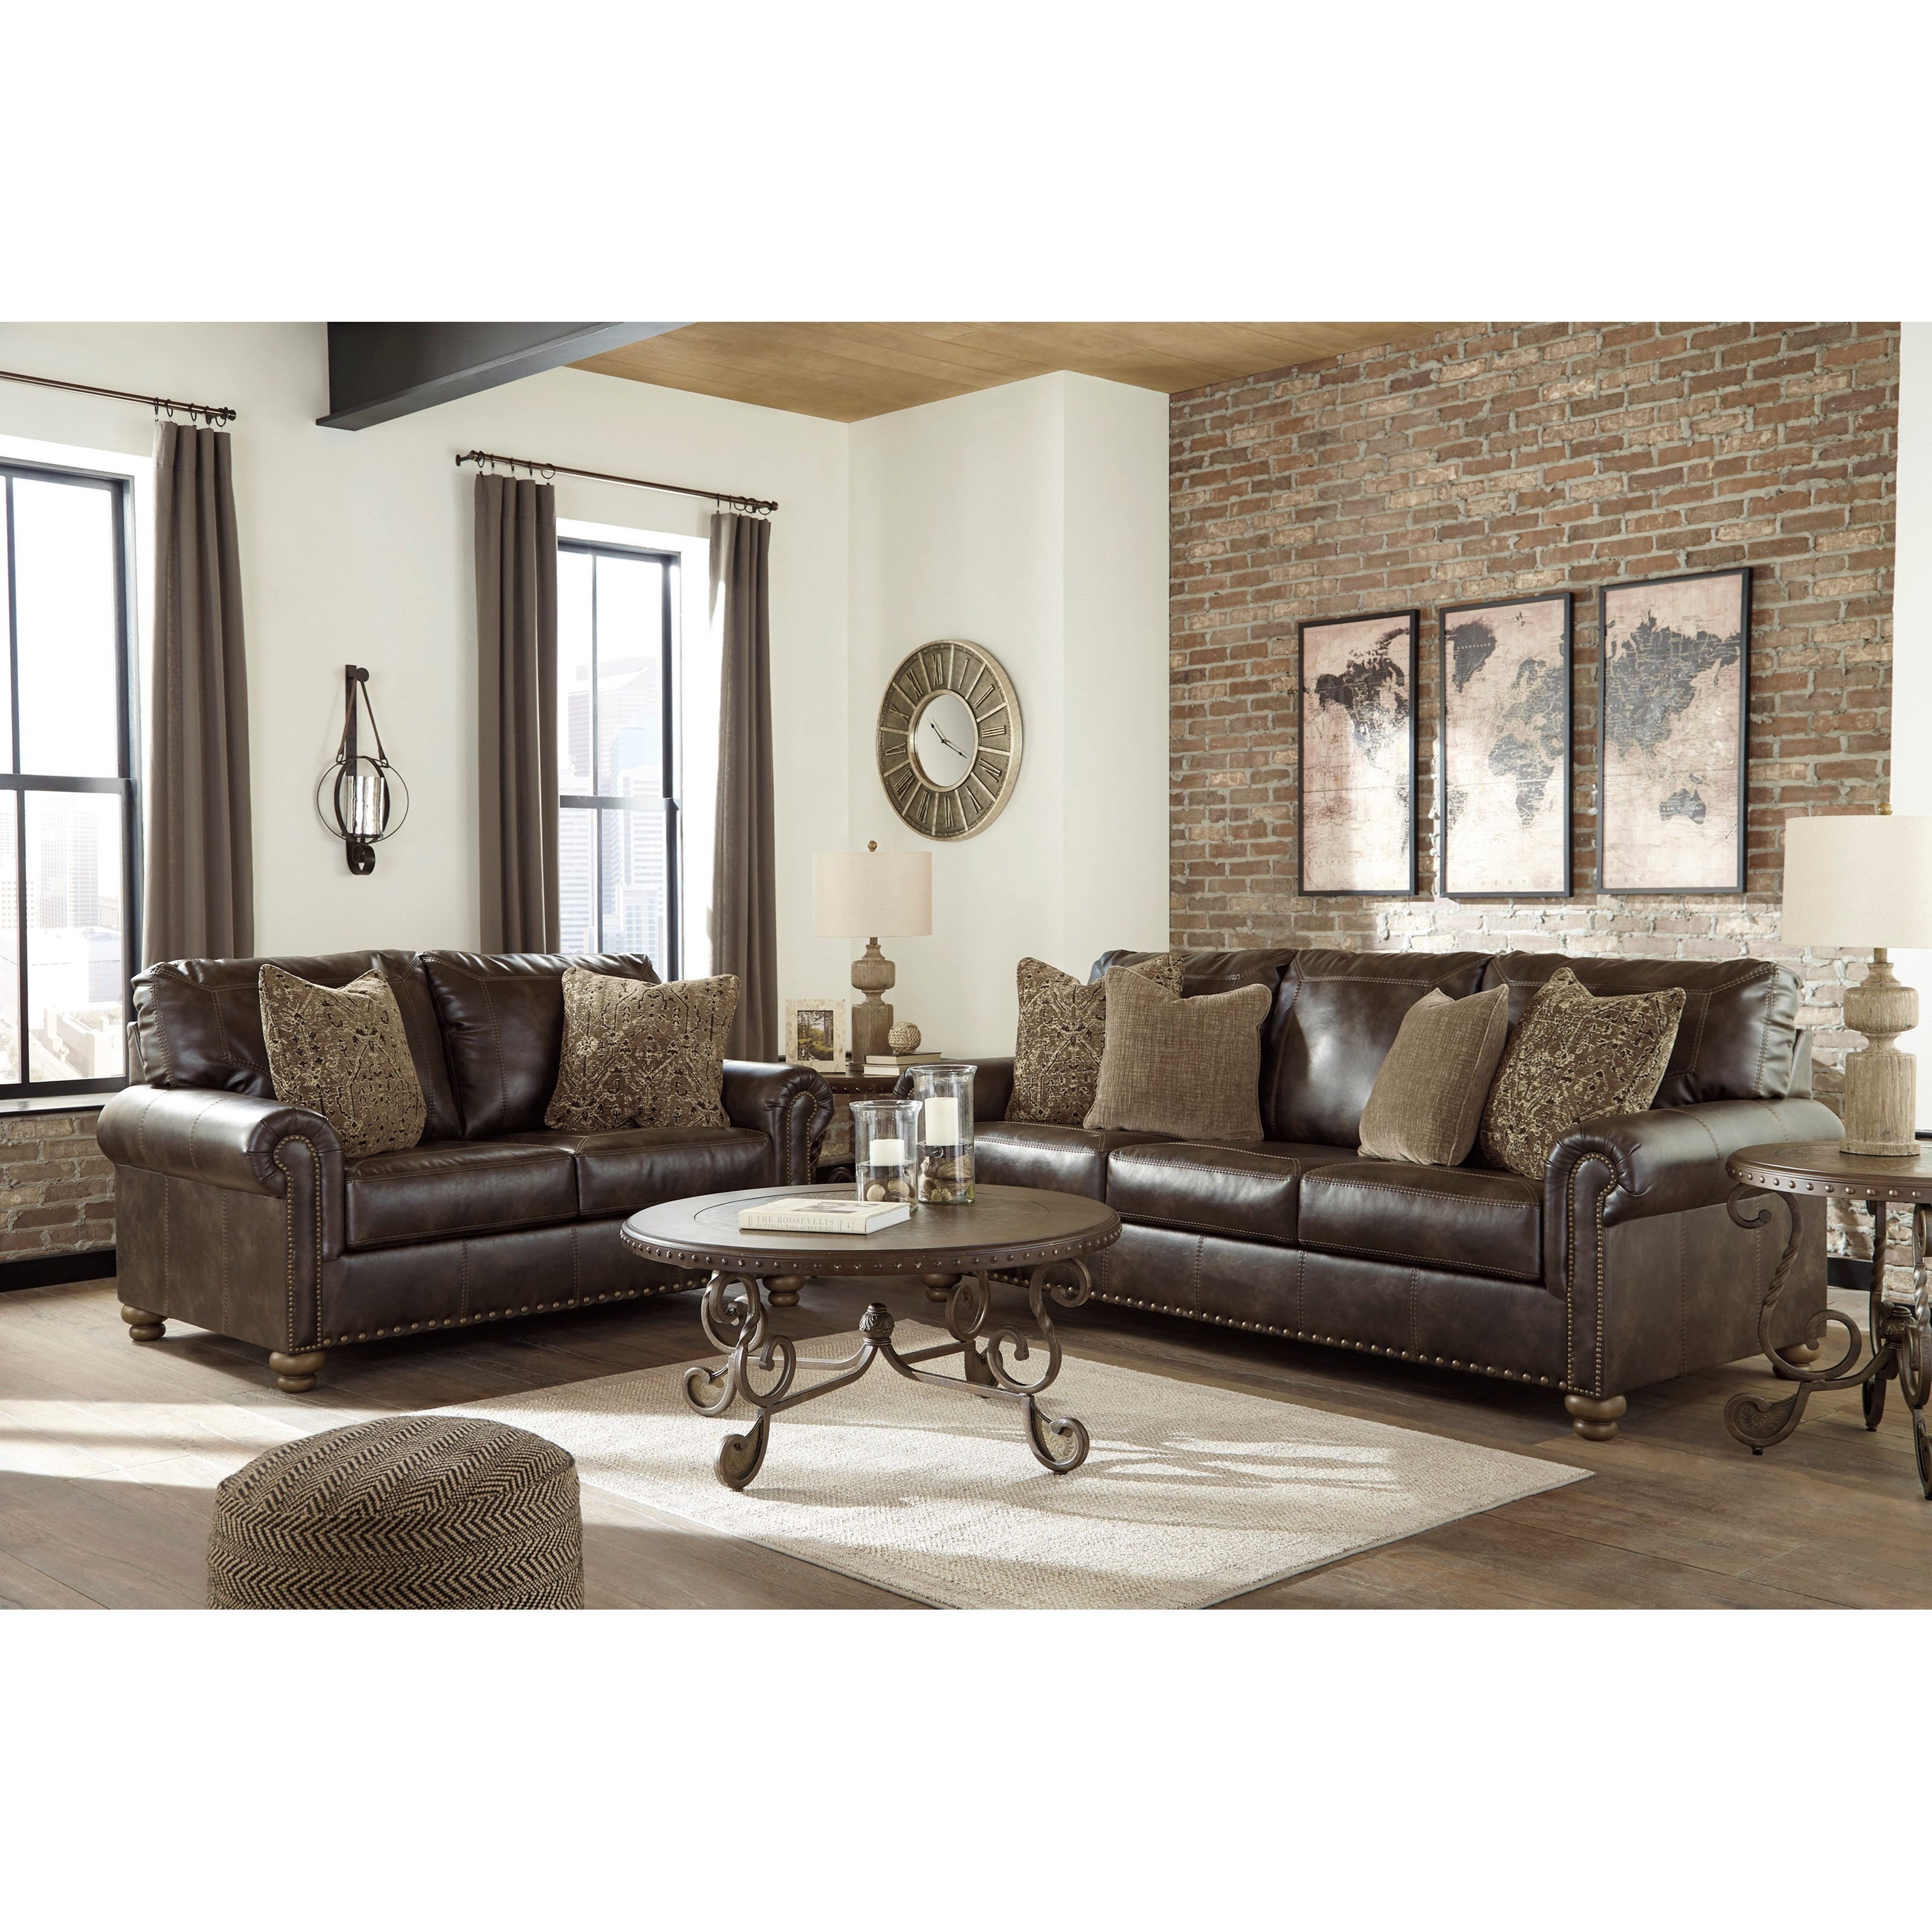 Nicorvo Stationary Living Room Group by Ashley (Signature Design) at Johnny Janosik